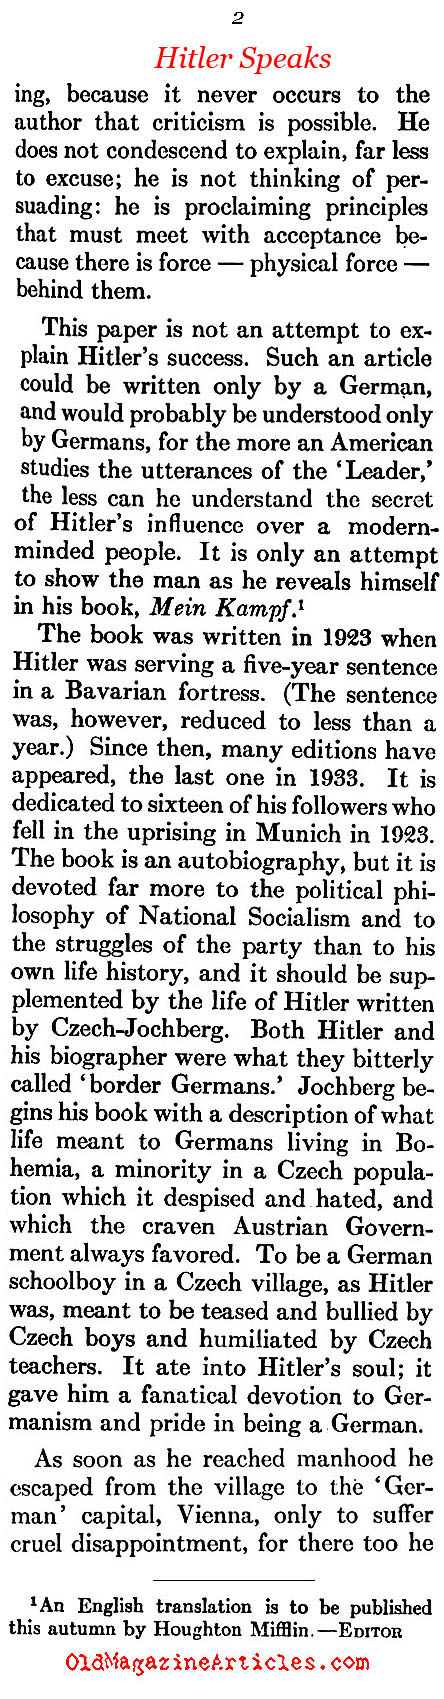 Hitler Gets a Bad Review (Atlantic Monthly, 1933)